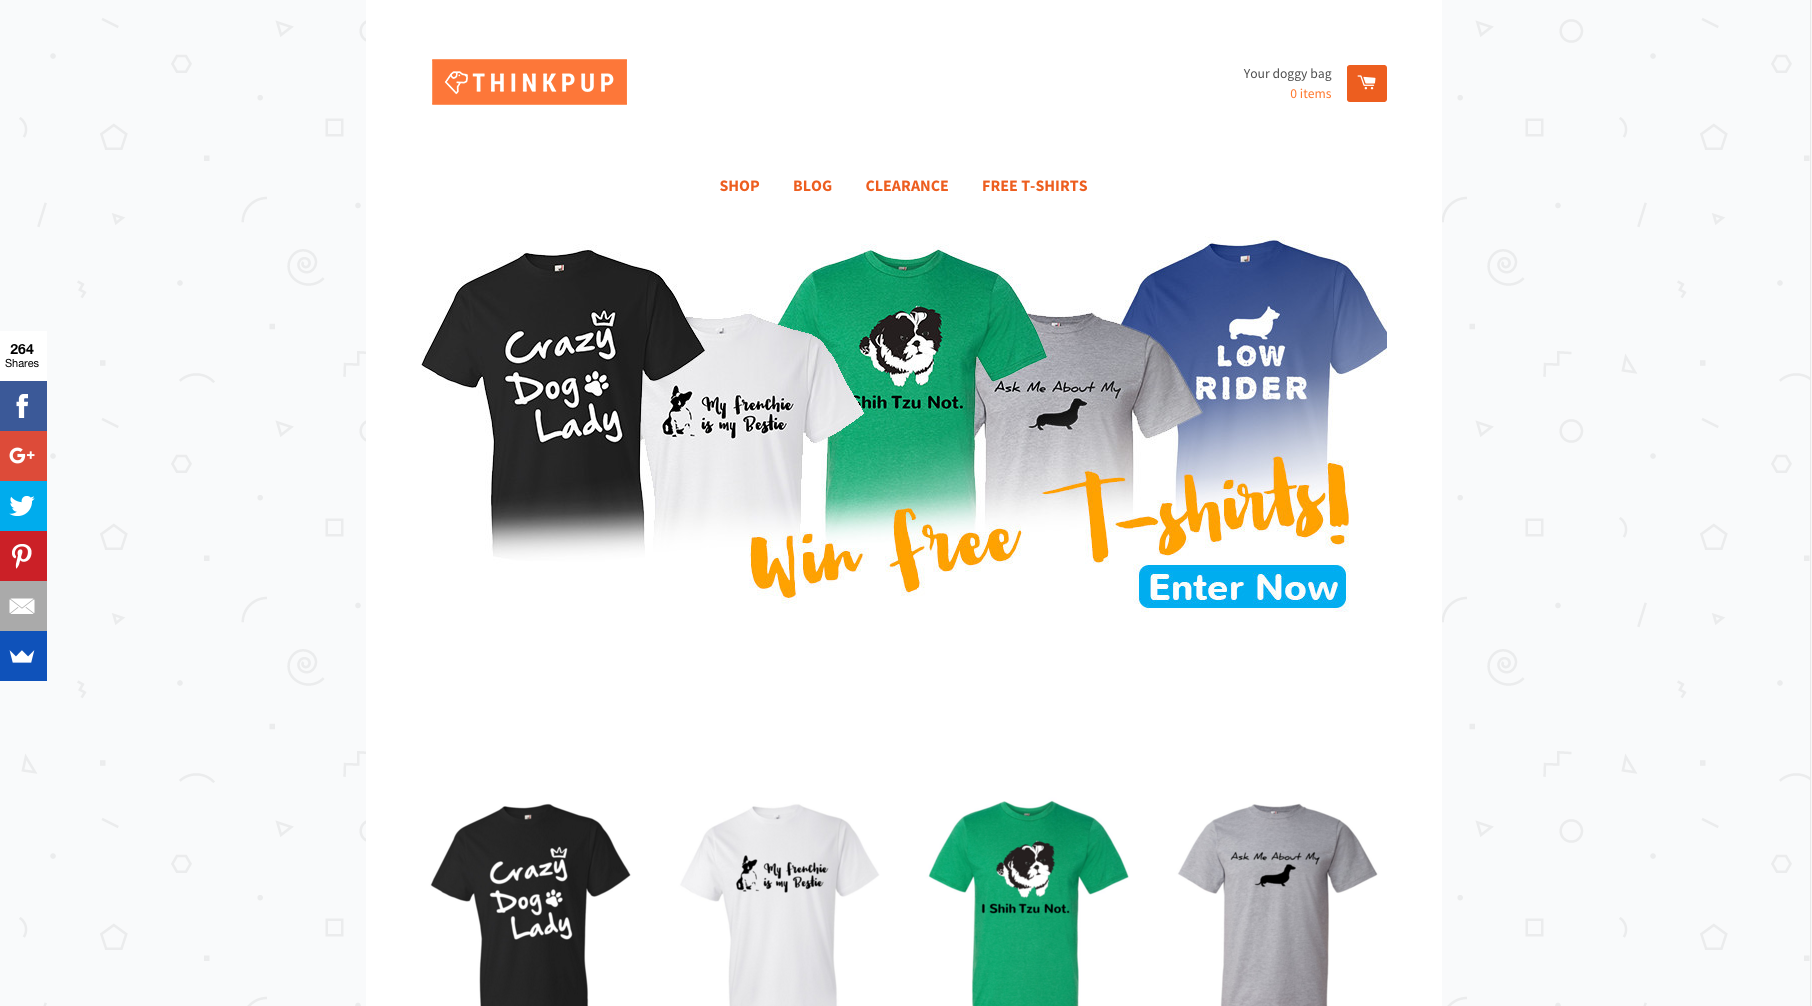 thinkpup t shirts